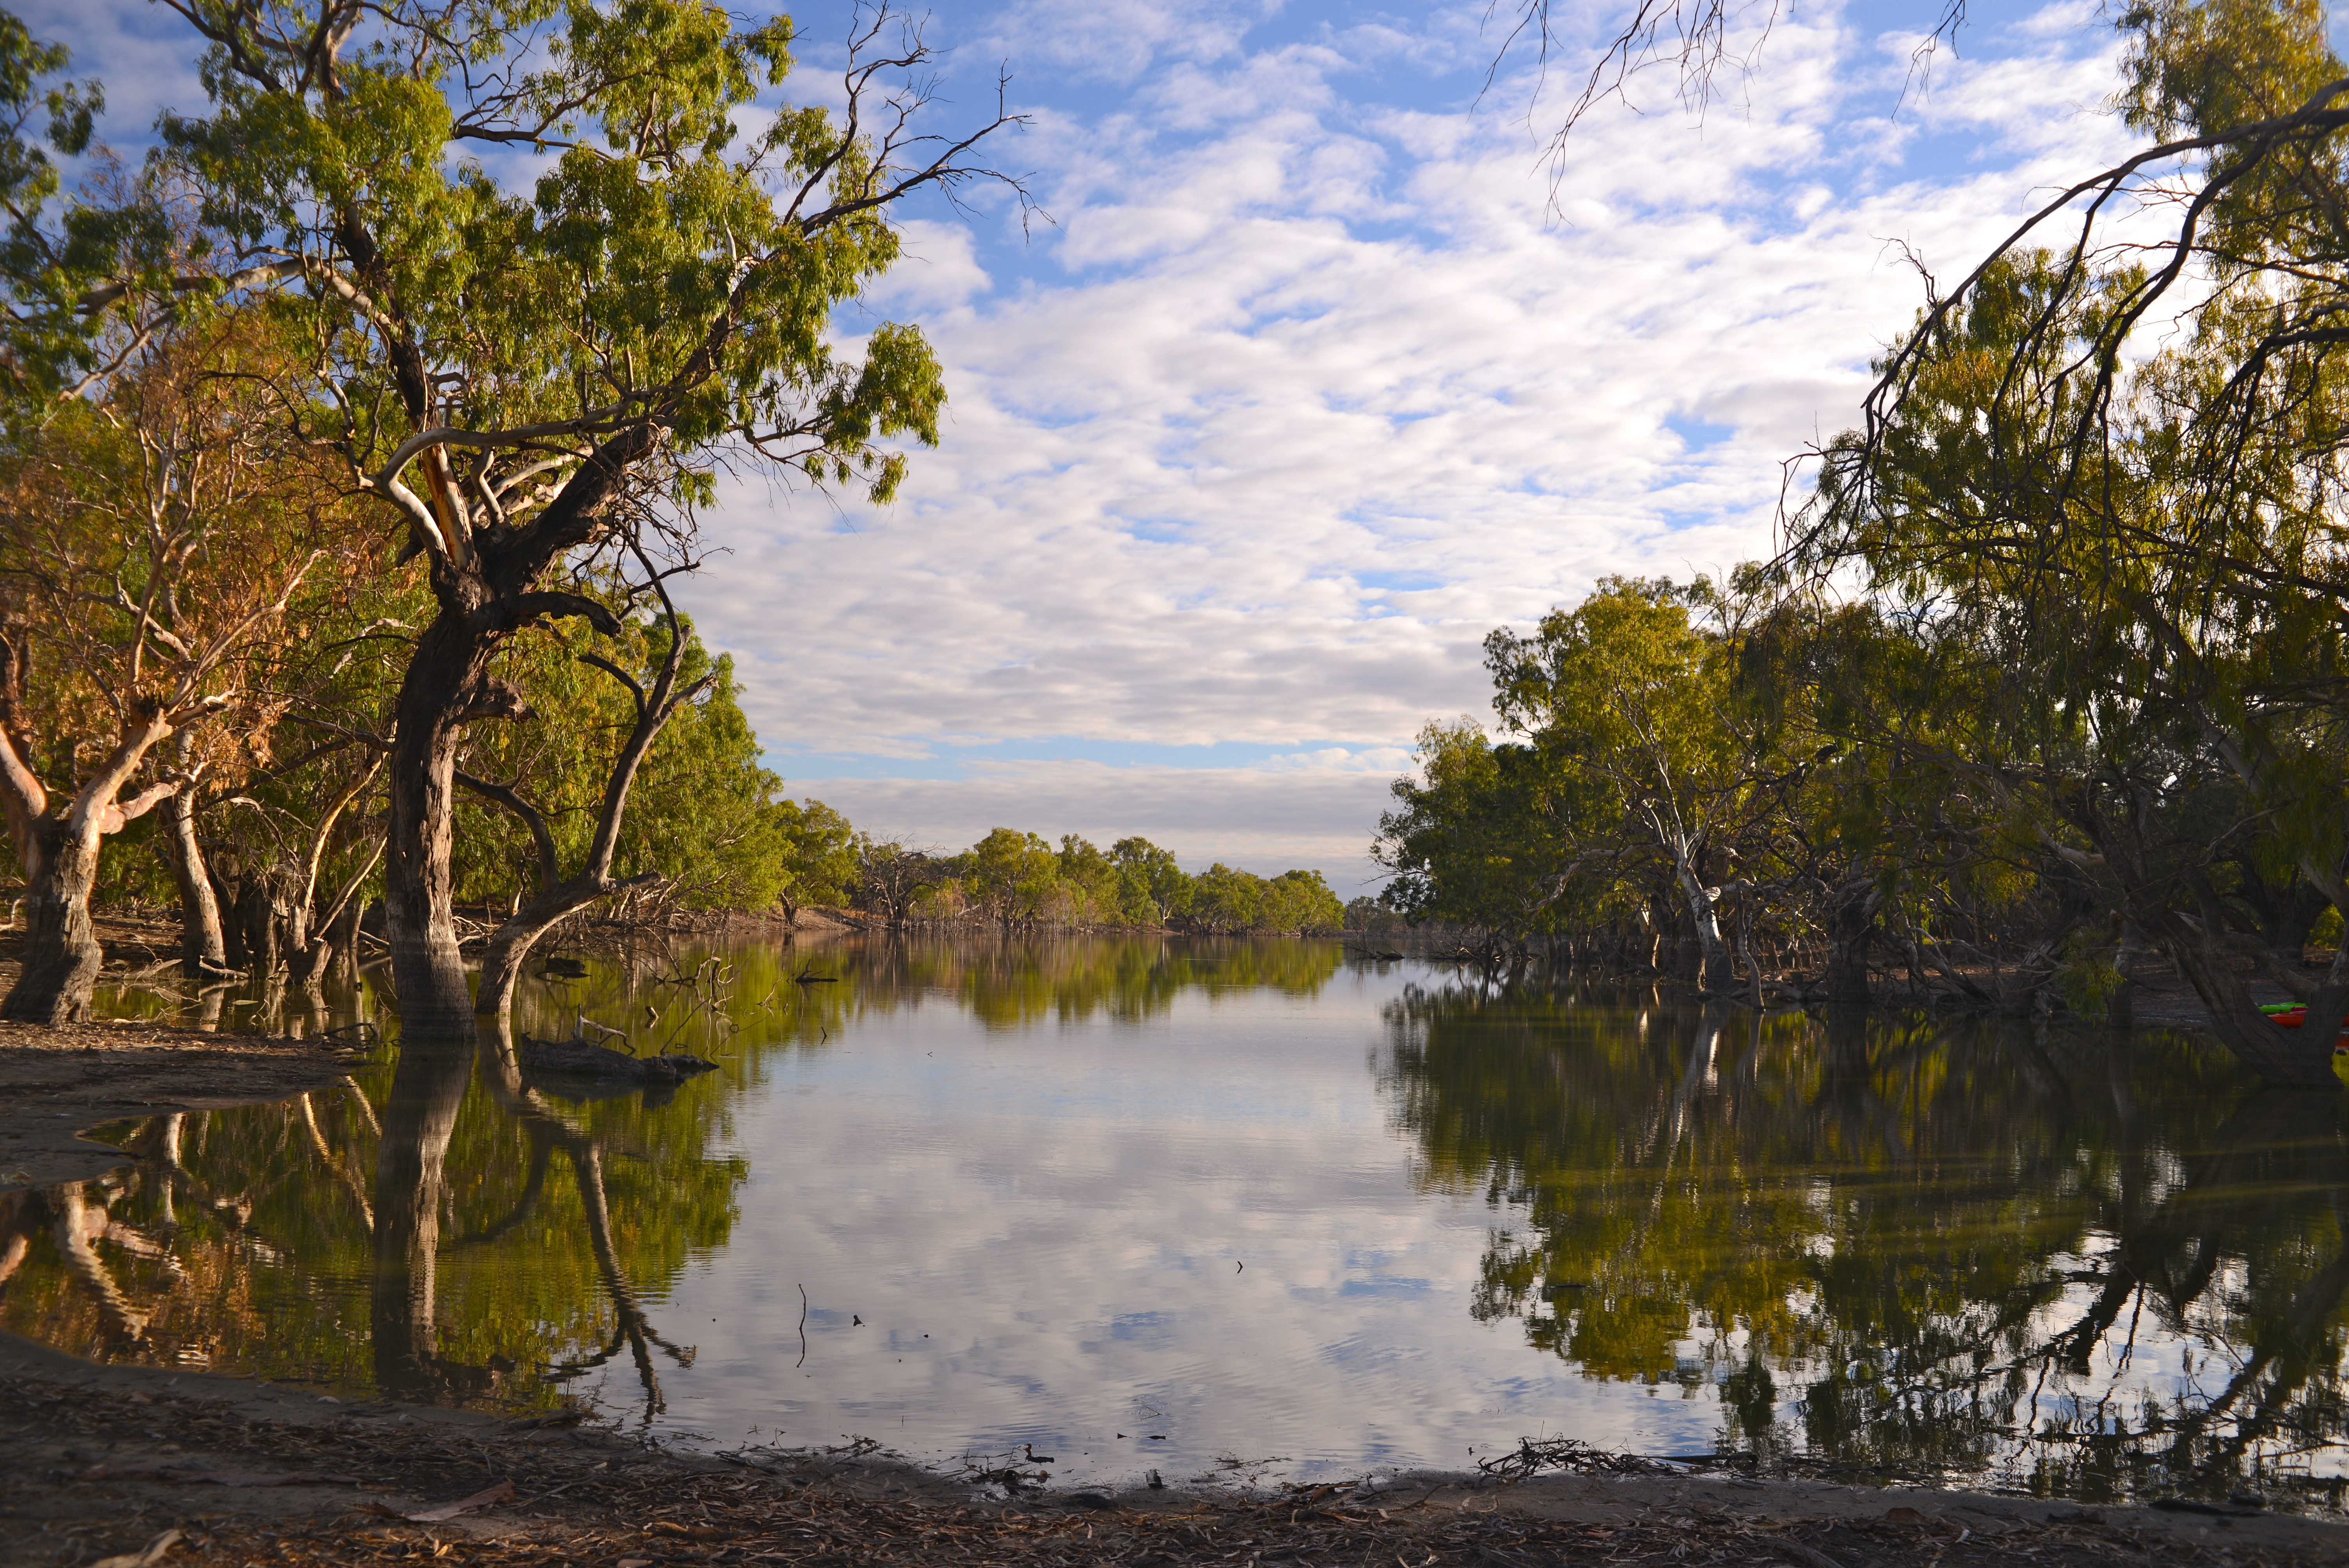 By the Billabong, Outback Australia